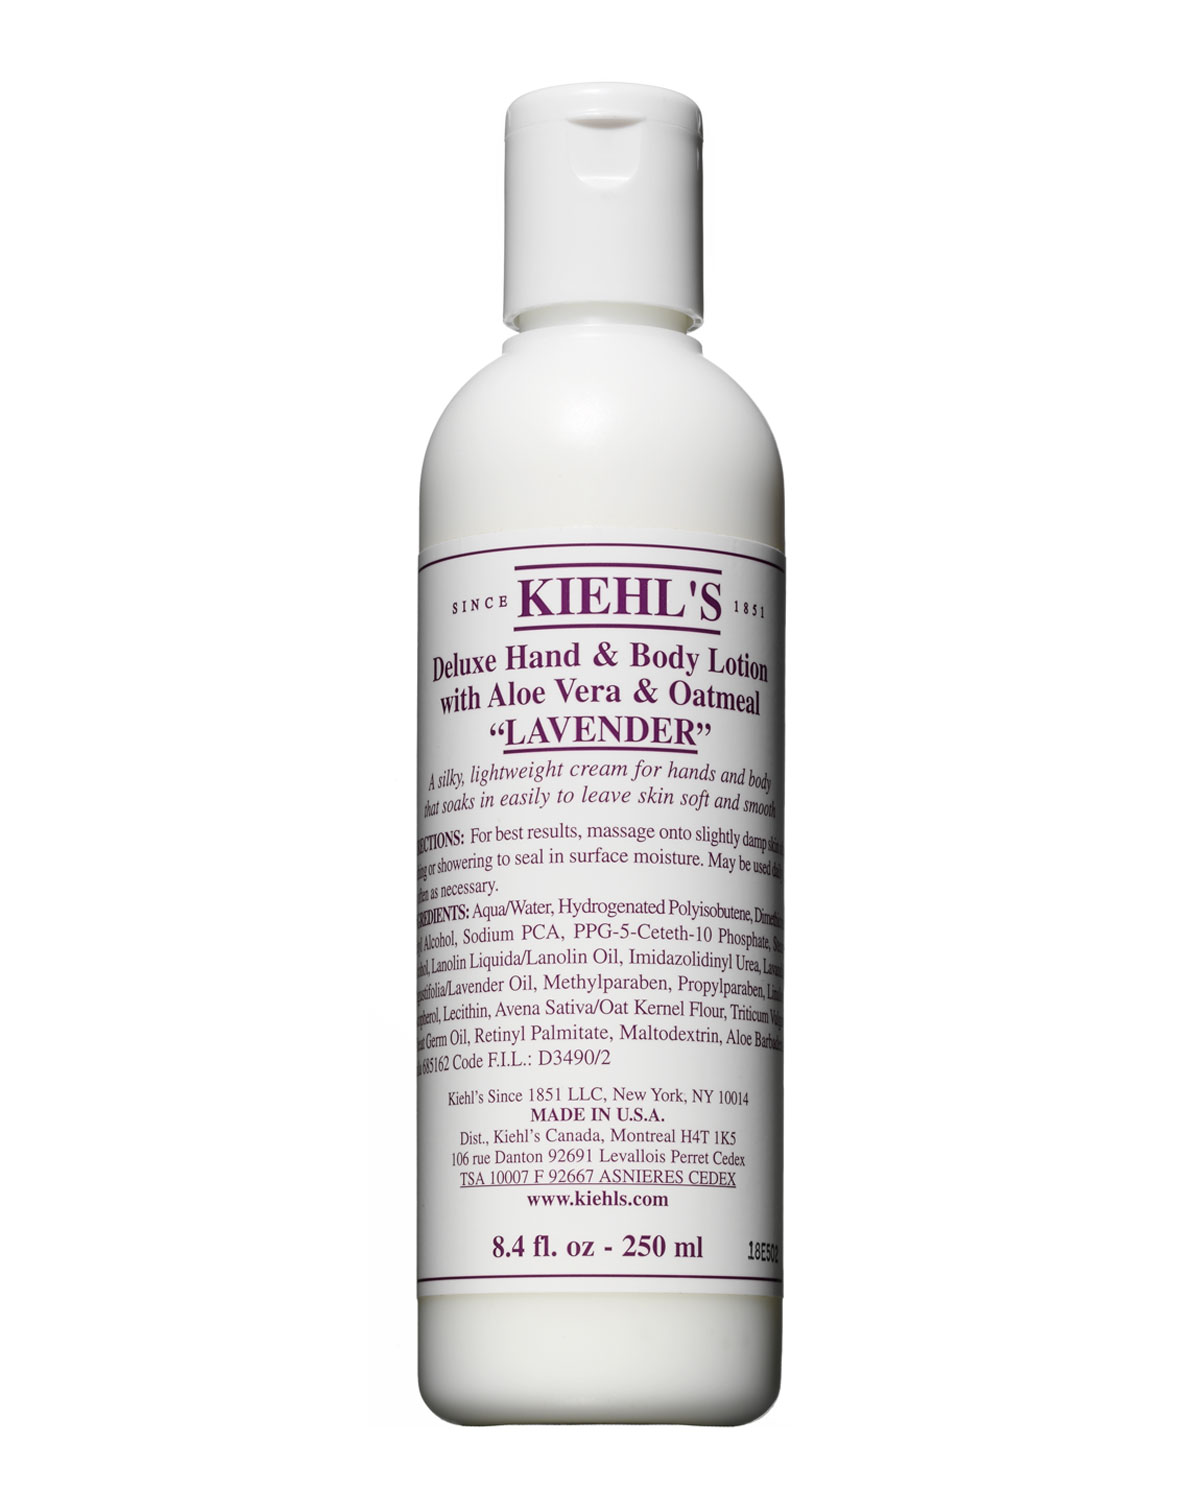 Kiehl's Since 1851 1851 Grapefruit Deluxe Hand & Body Lotion With Aloe Vera & Oatmeal, 8.4 oz In Lavender